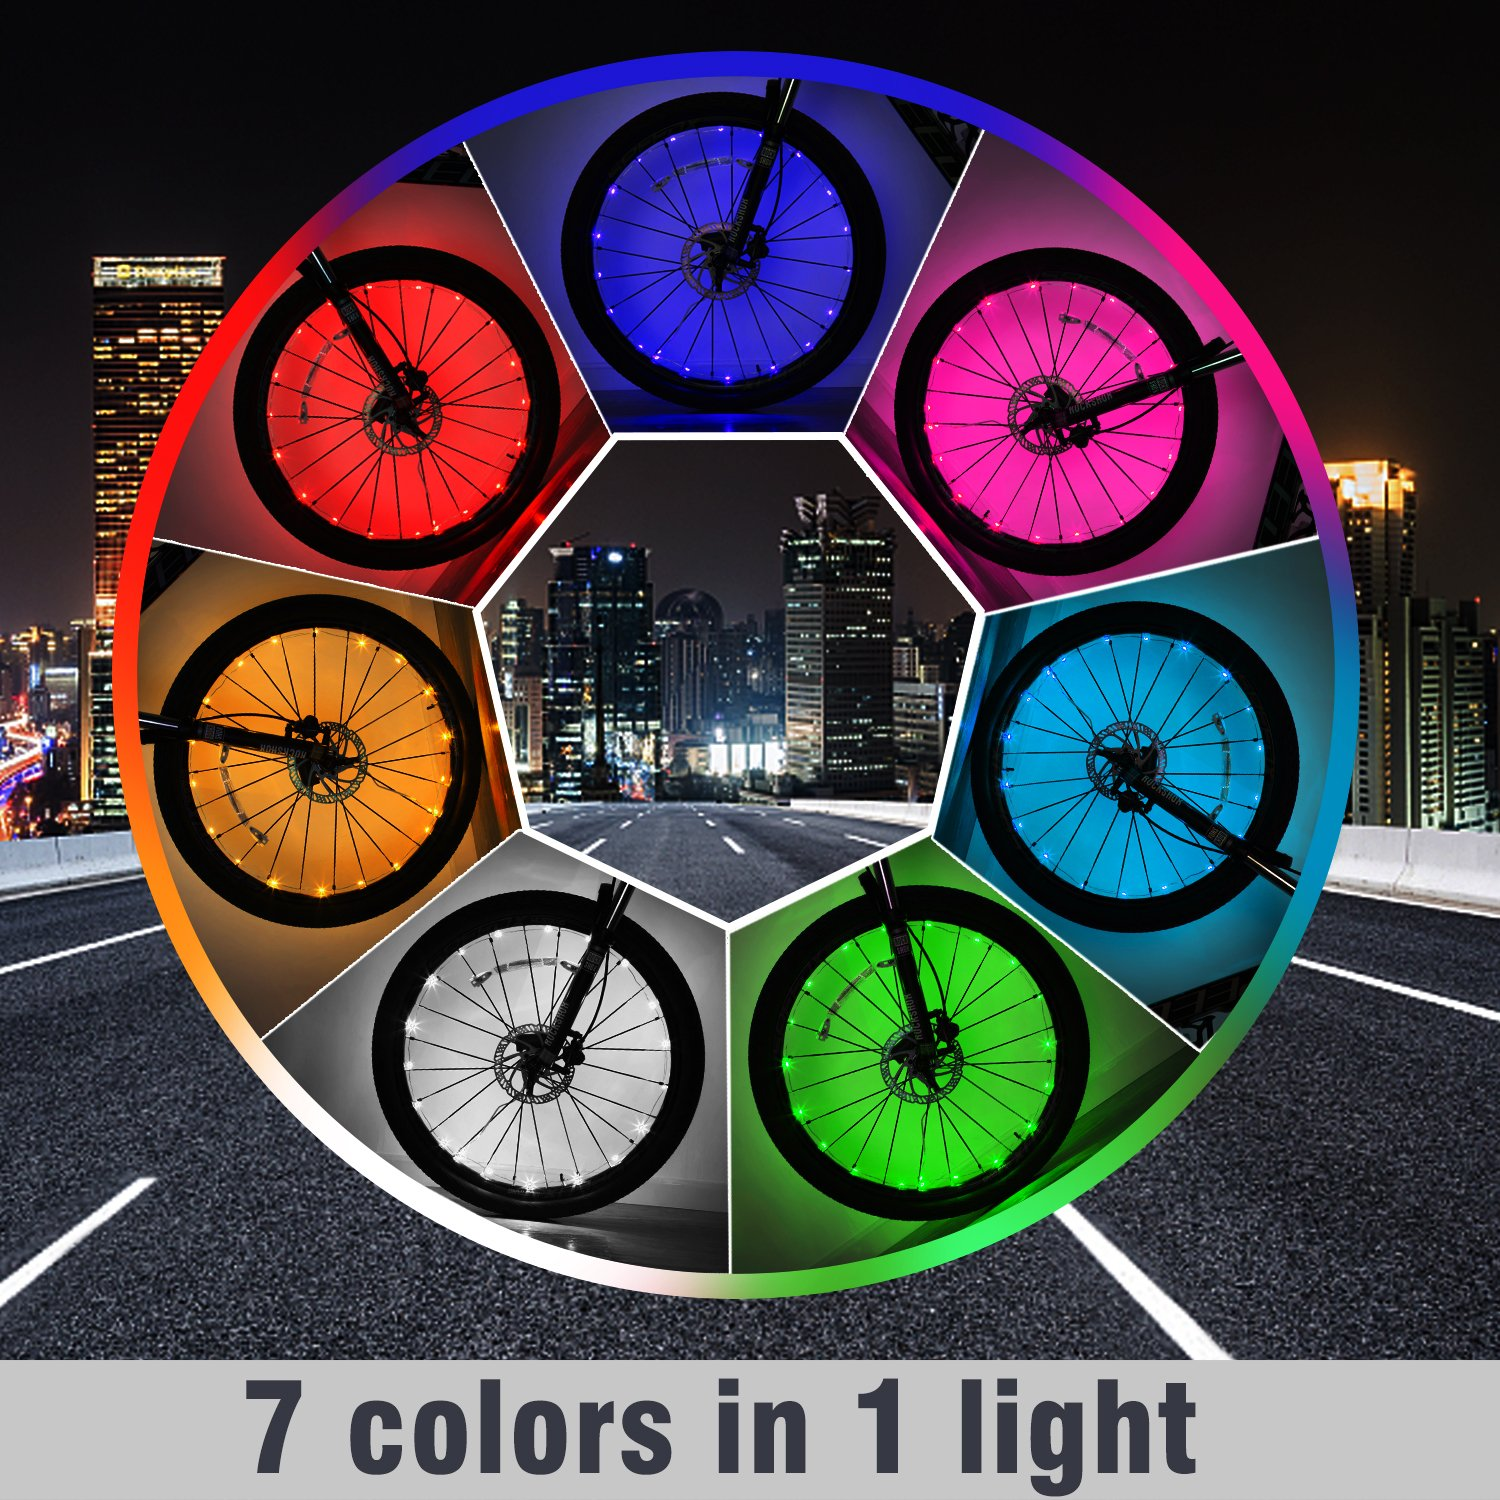 Exwell Bike Wheel Lights, 7 Colors in 1 Bike lights,Safety at Night,Switch 9 Modes LED Bike Accessories Lights, USB rechargeable 1 PACK by Exwell (Image #2)